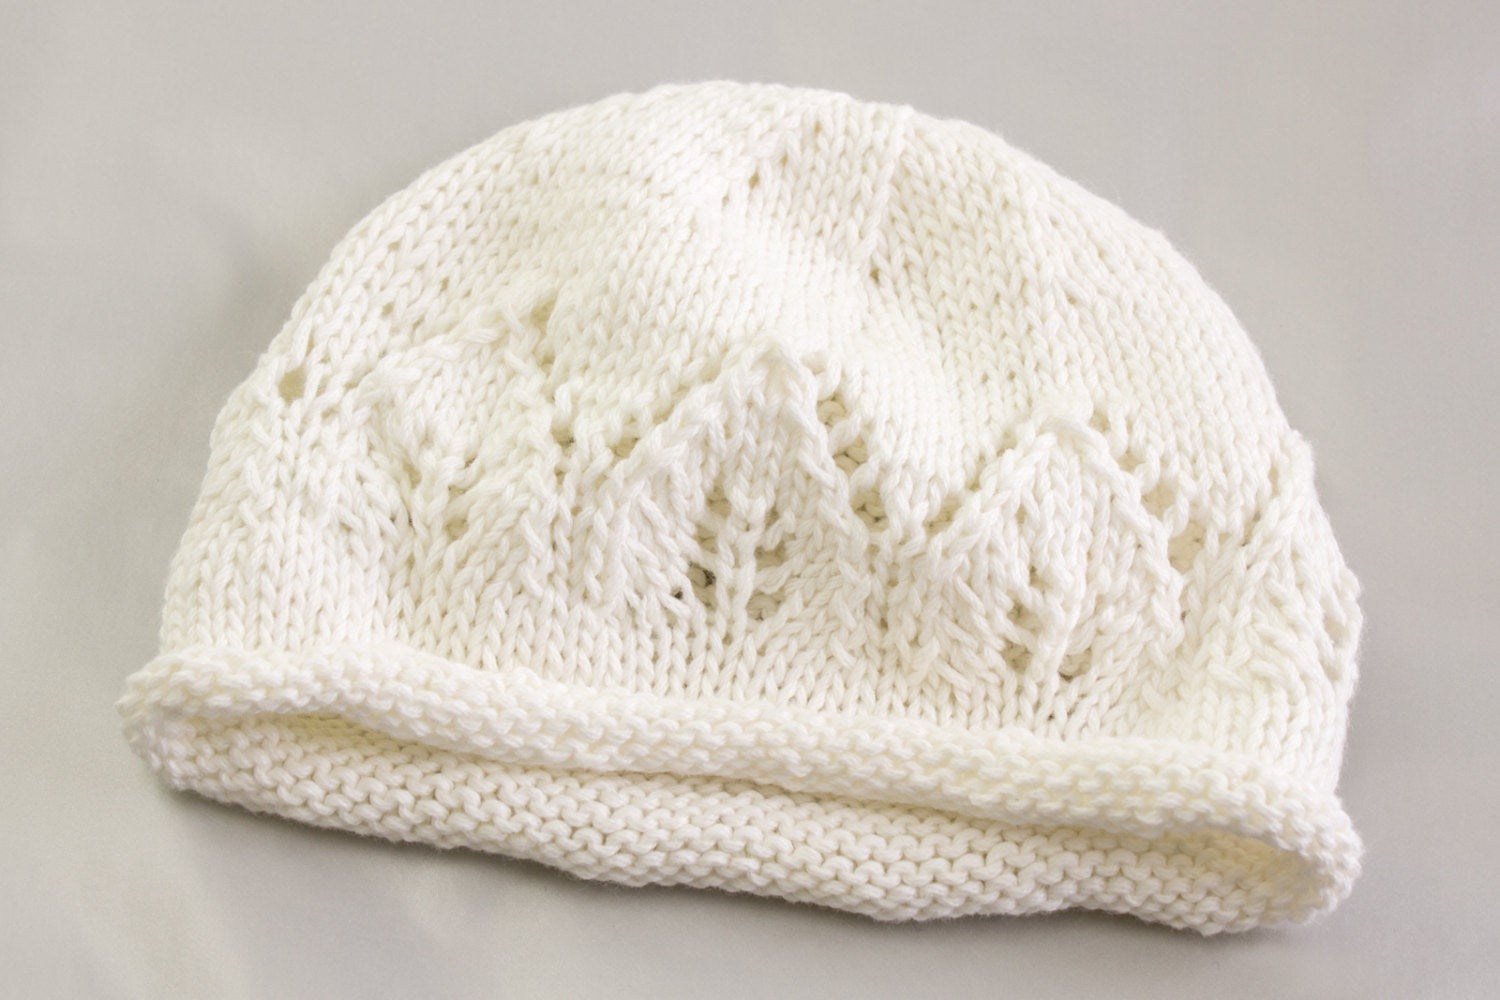 Knitting Patterns Baby Hat Knitting Pattern Newborn Ba Hat Ba Hat With Lace Panel Ba Beanie Ba Hat Rolled Edge Ba Hat Newborn Beanie